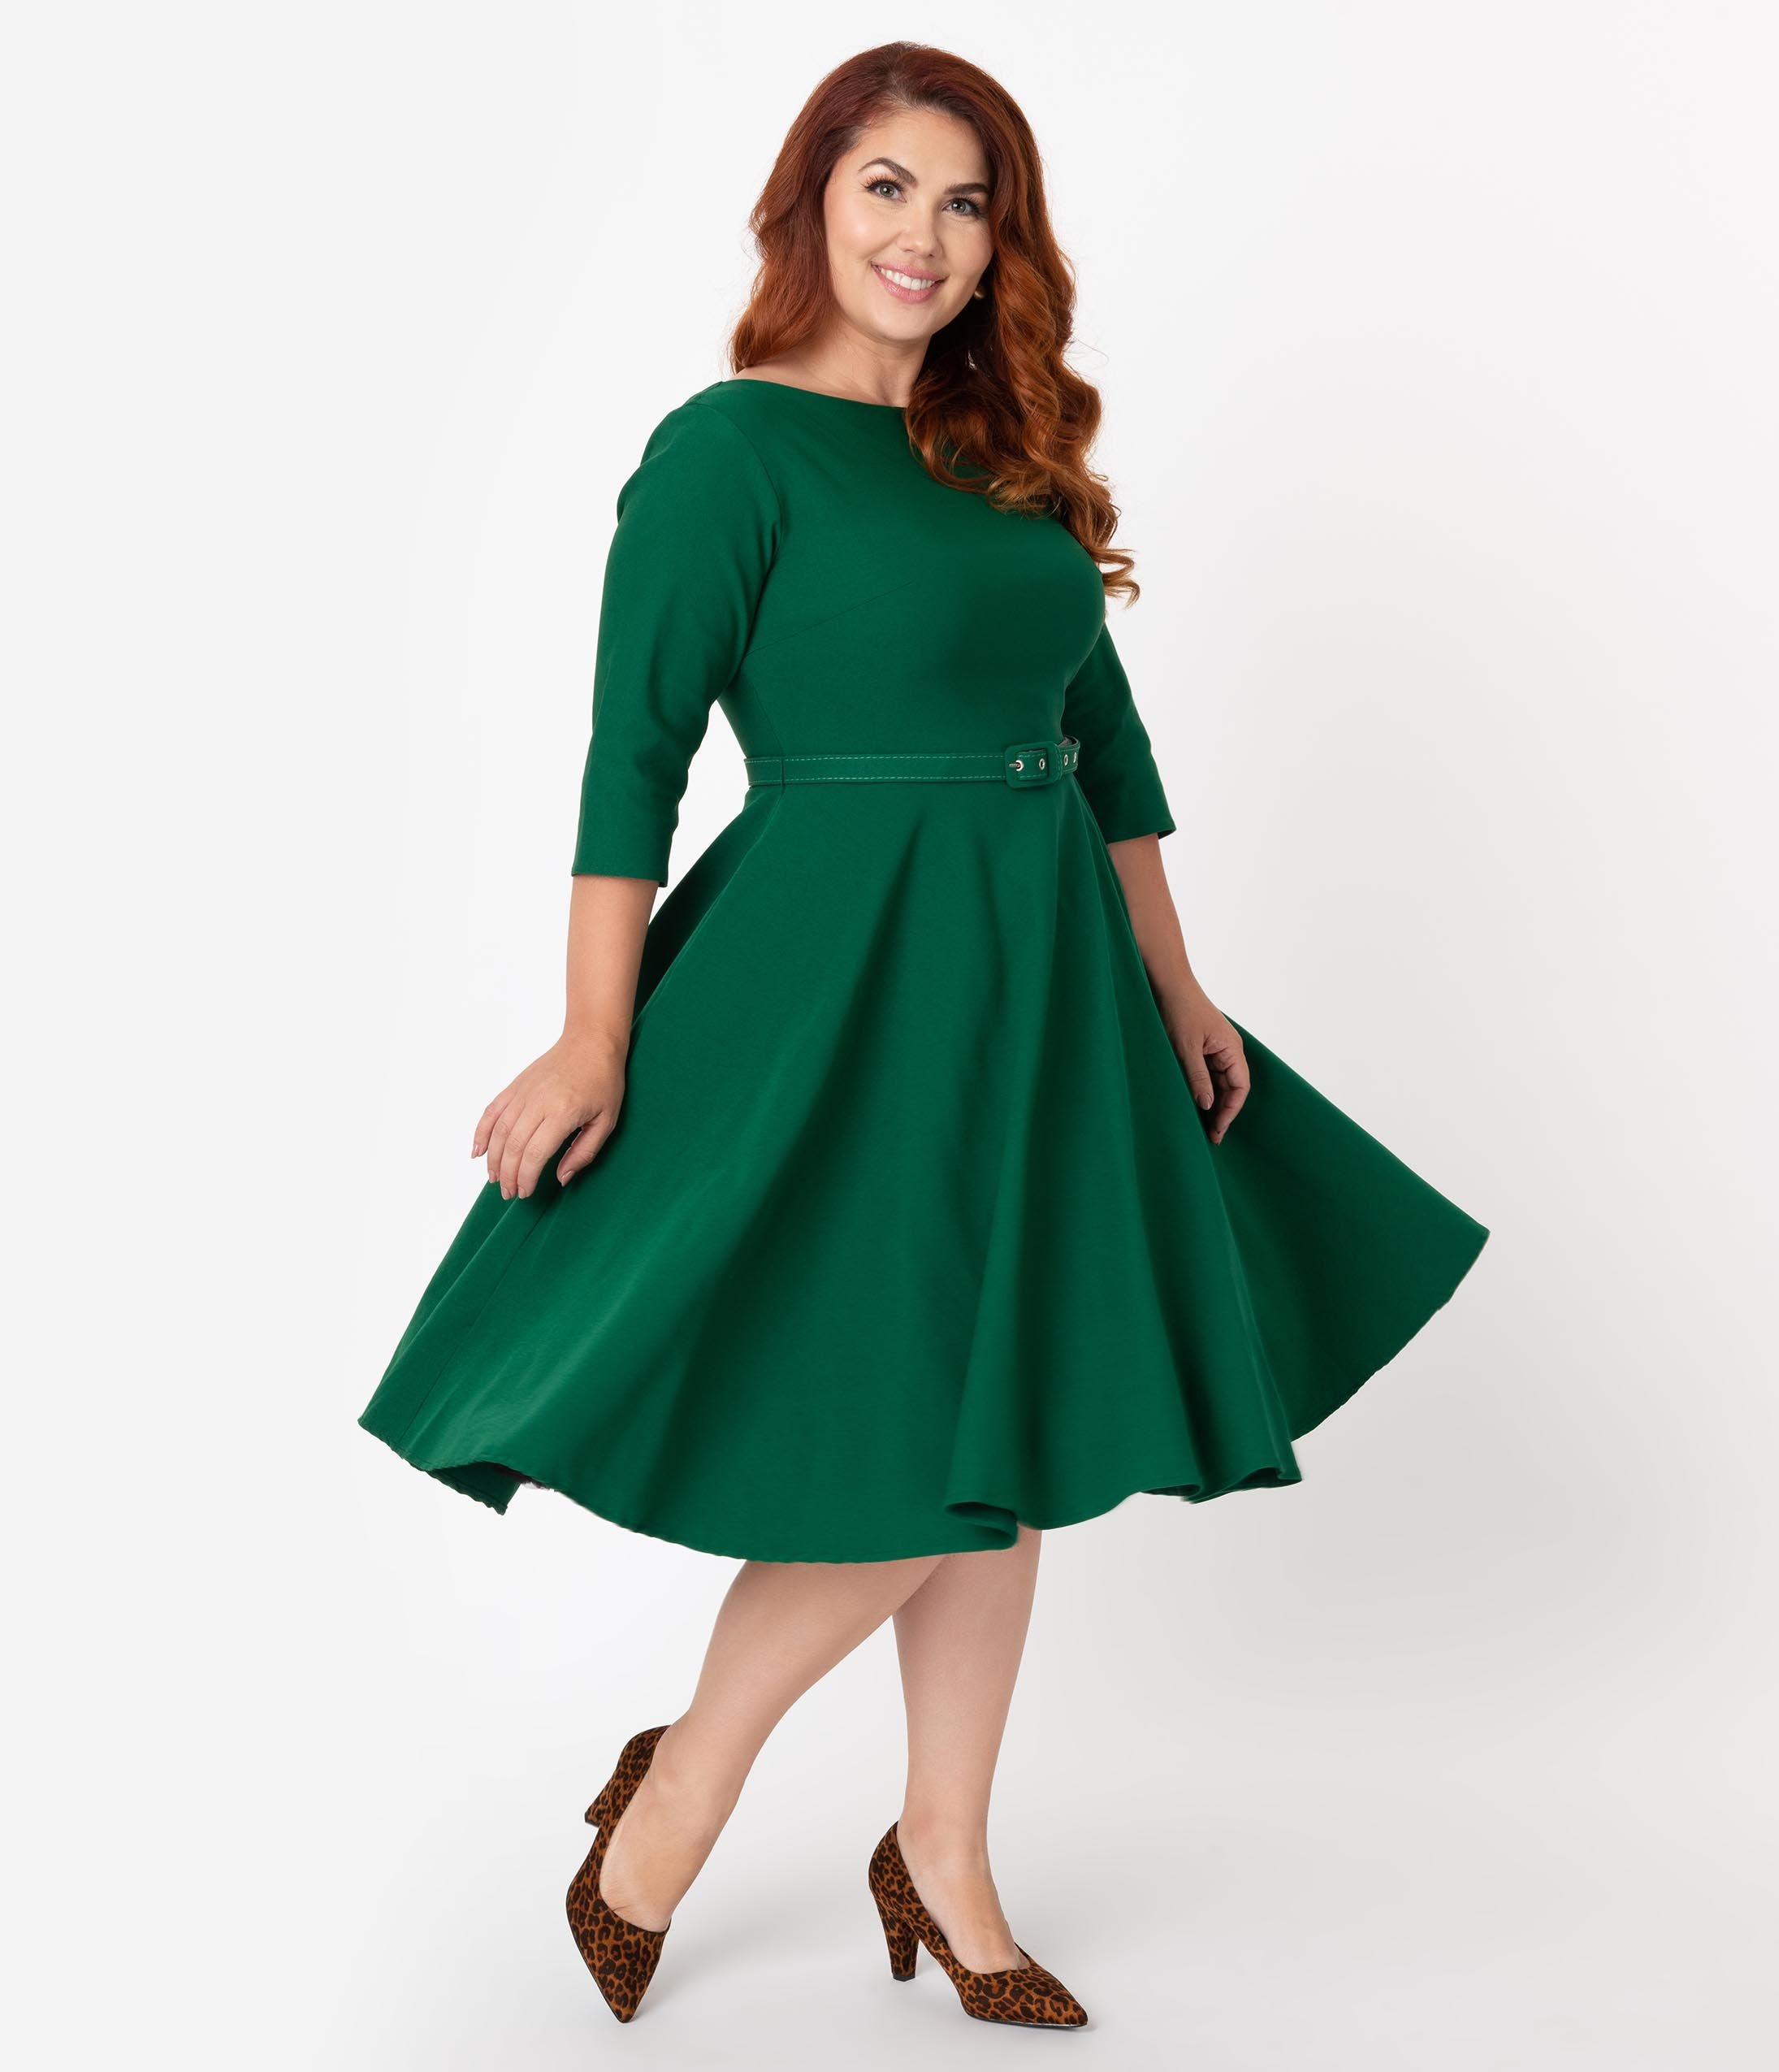 1950s Plus Size Dresses, Swing Dresses Unique Vintage Plus Size 1950S Style Emerald Green Stretch Sleeved Devon Swing Dress $88.00 AT vintagedancer.com